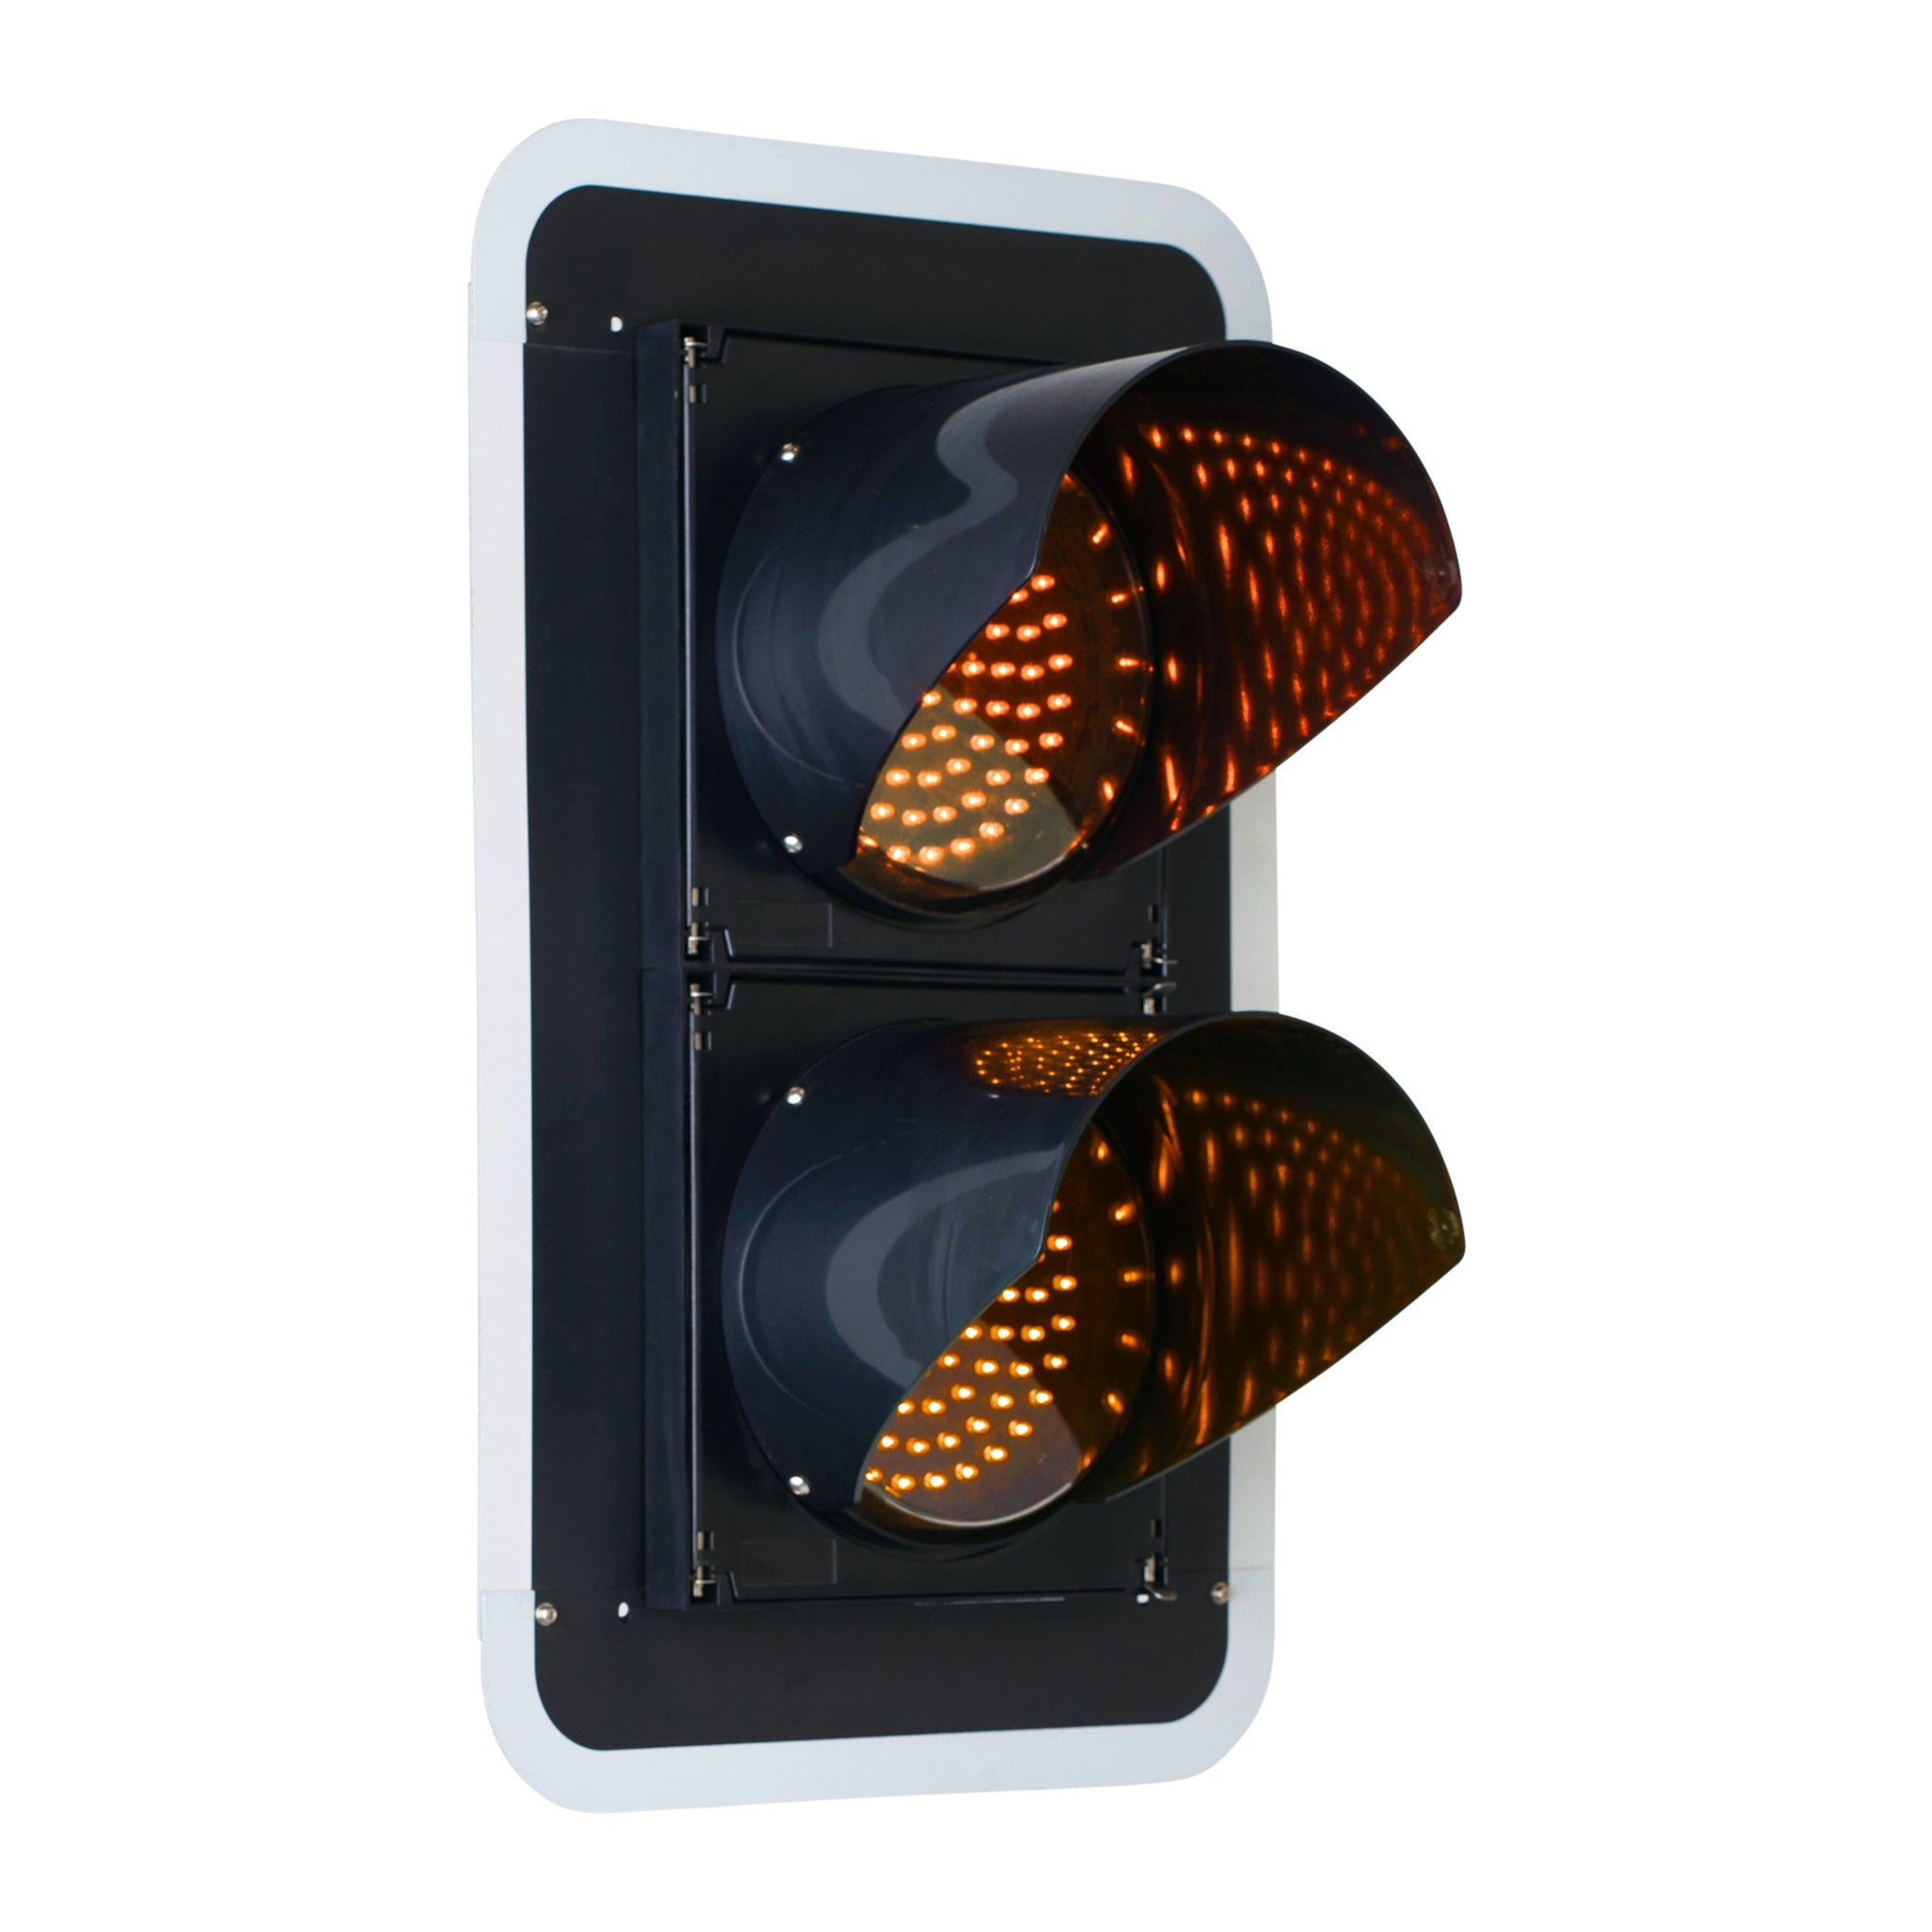 Pedestrian Crossing Wig-Wag Traffic Light Kit